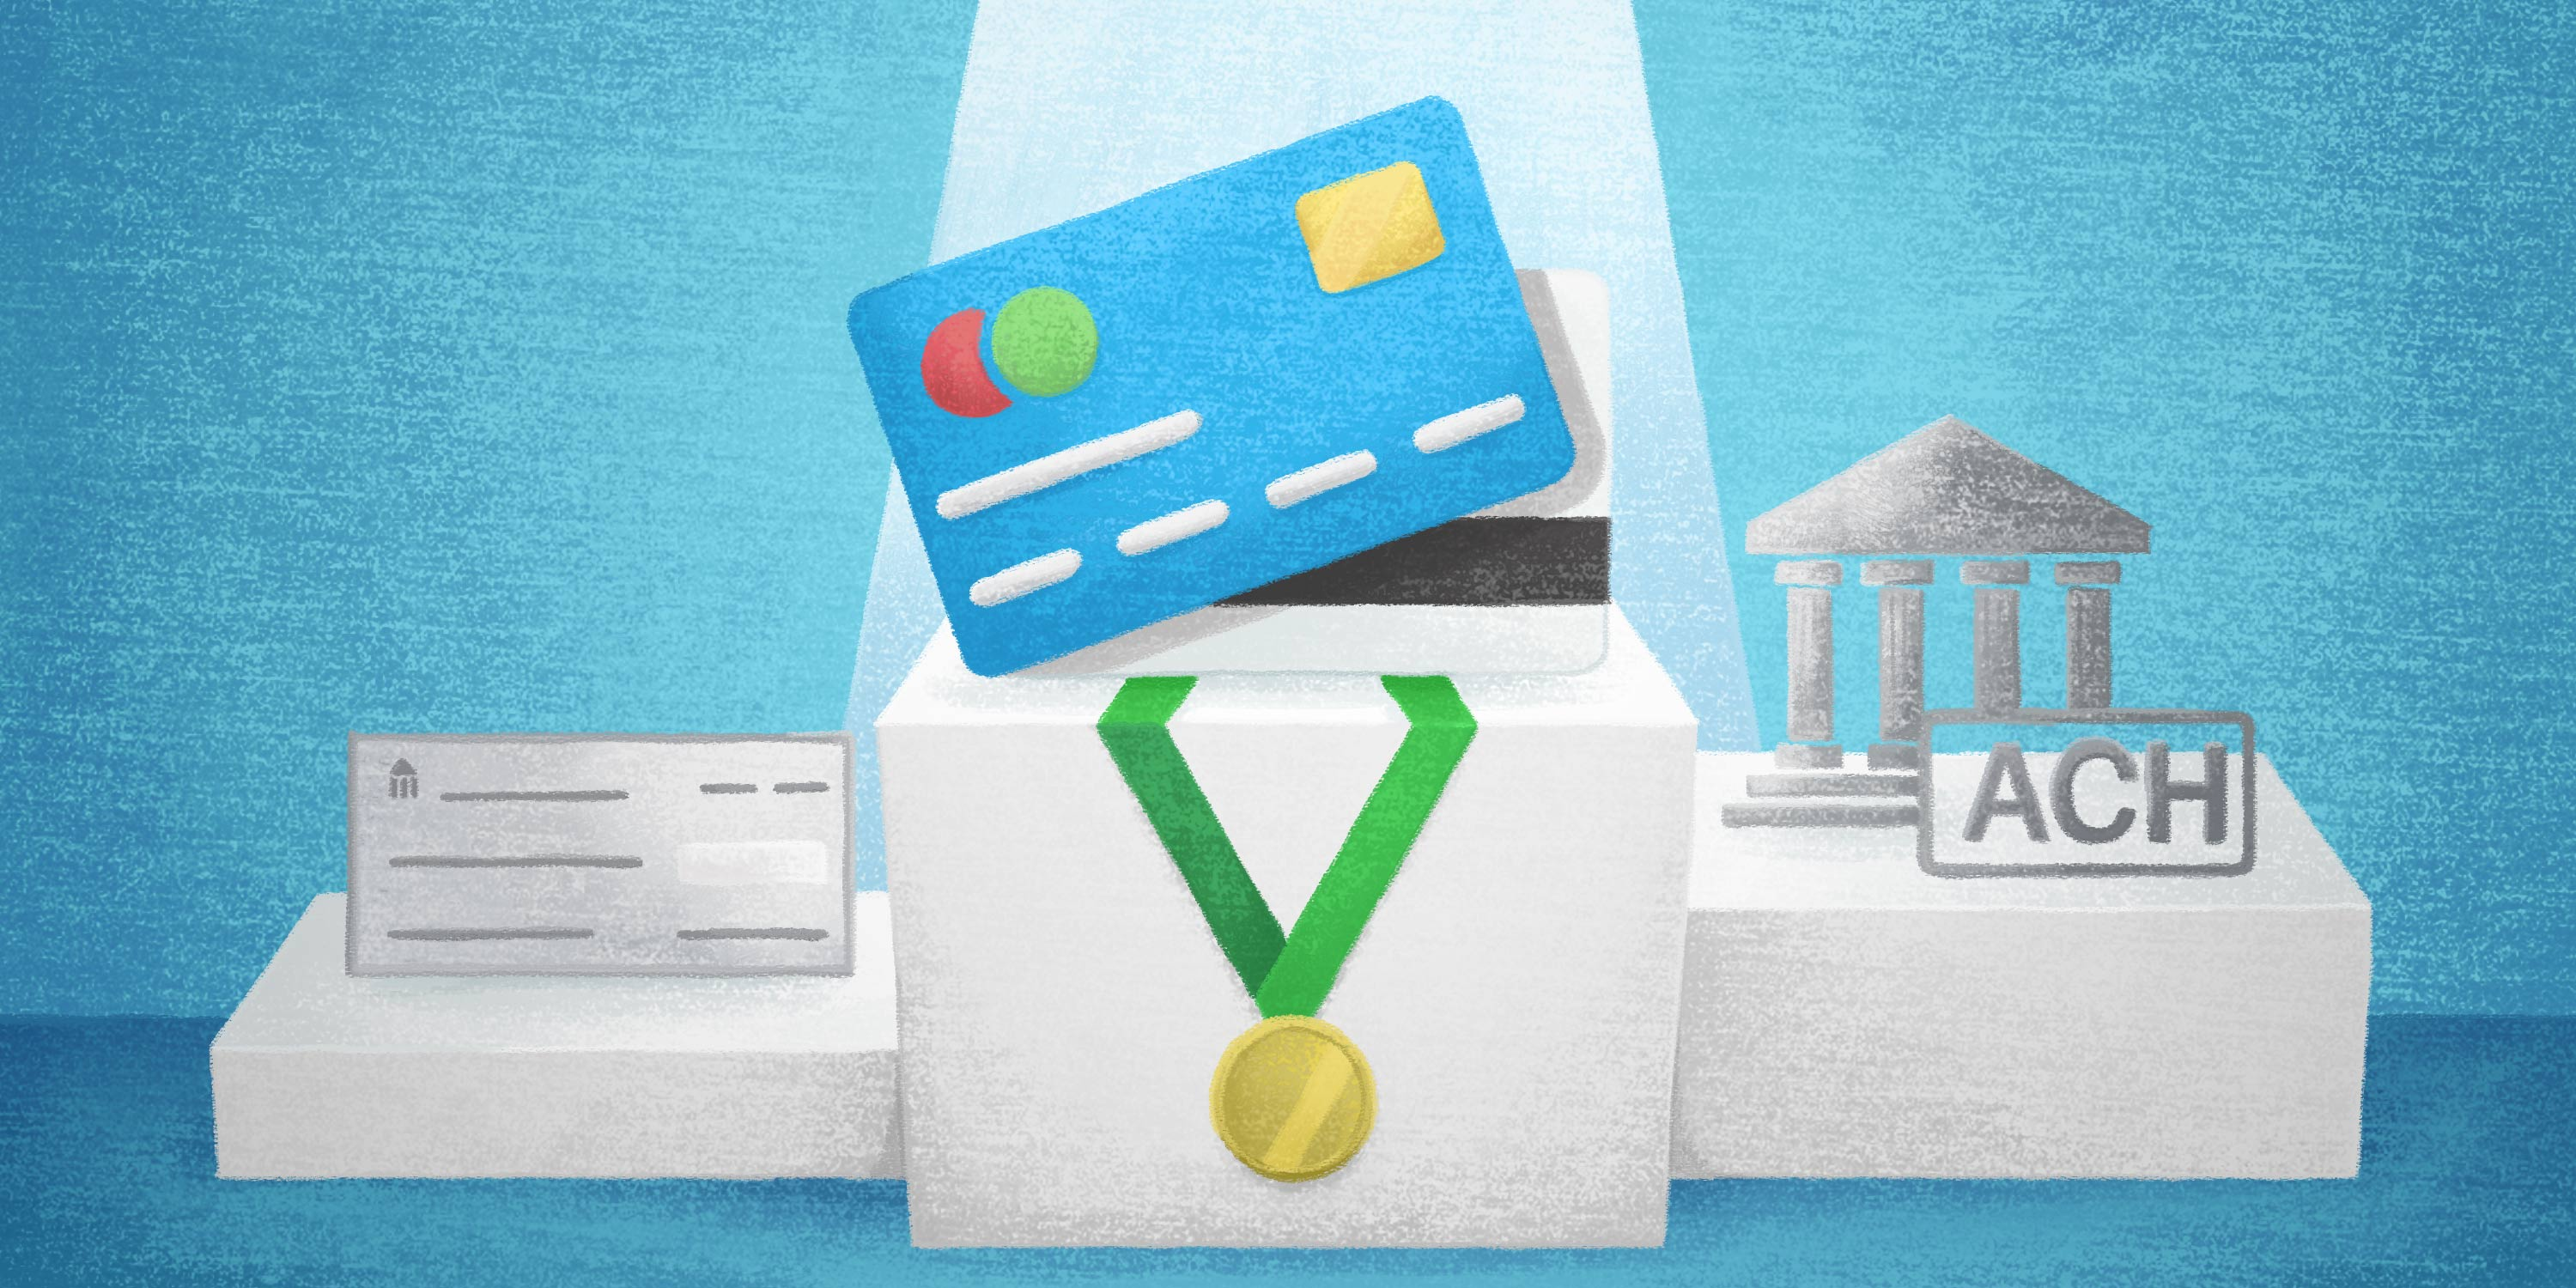 payment methods check, ach, and card with bronze, silver, and gold medals